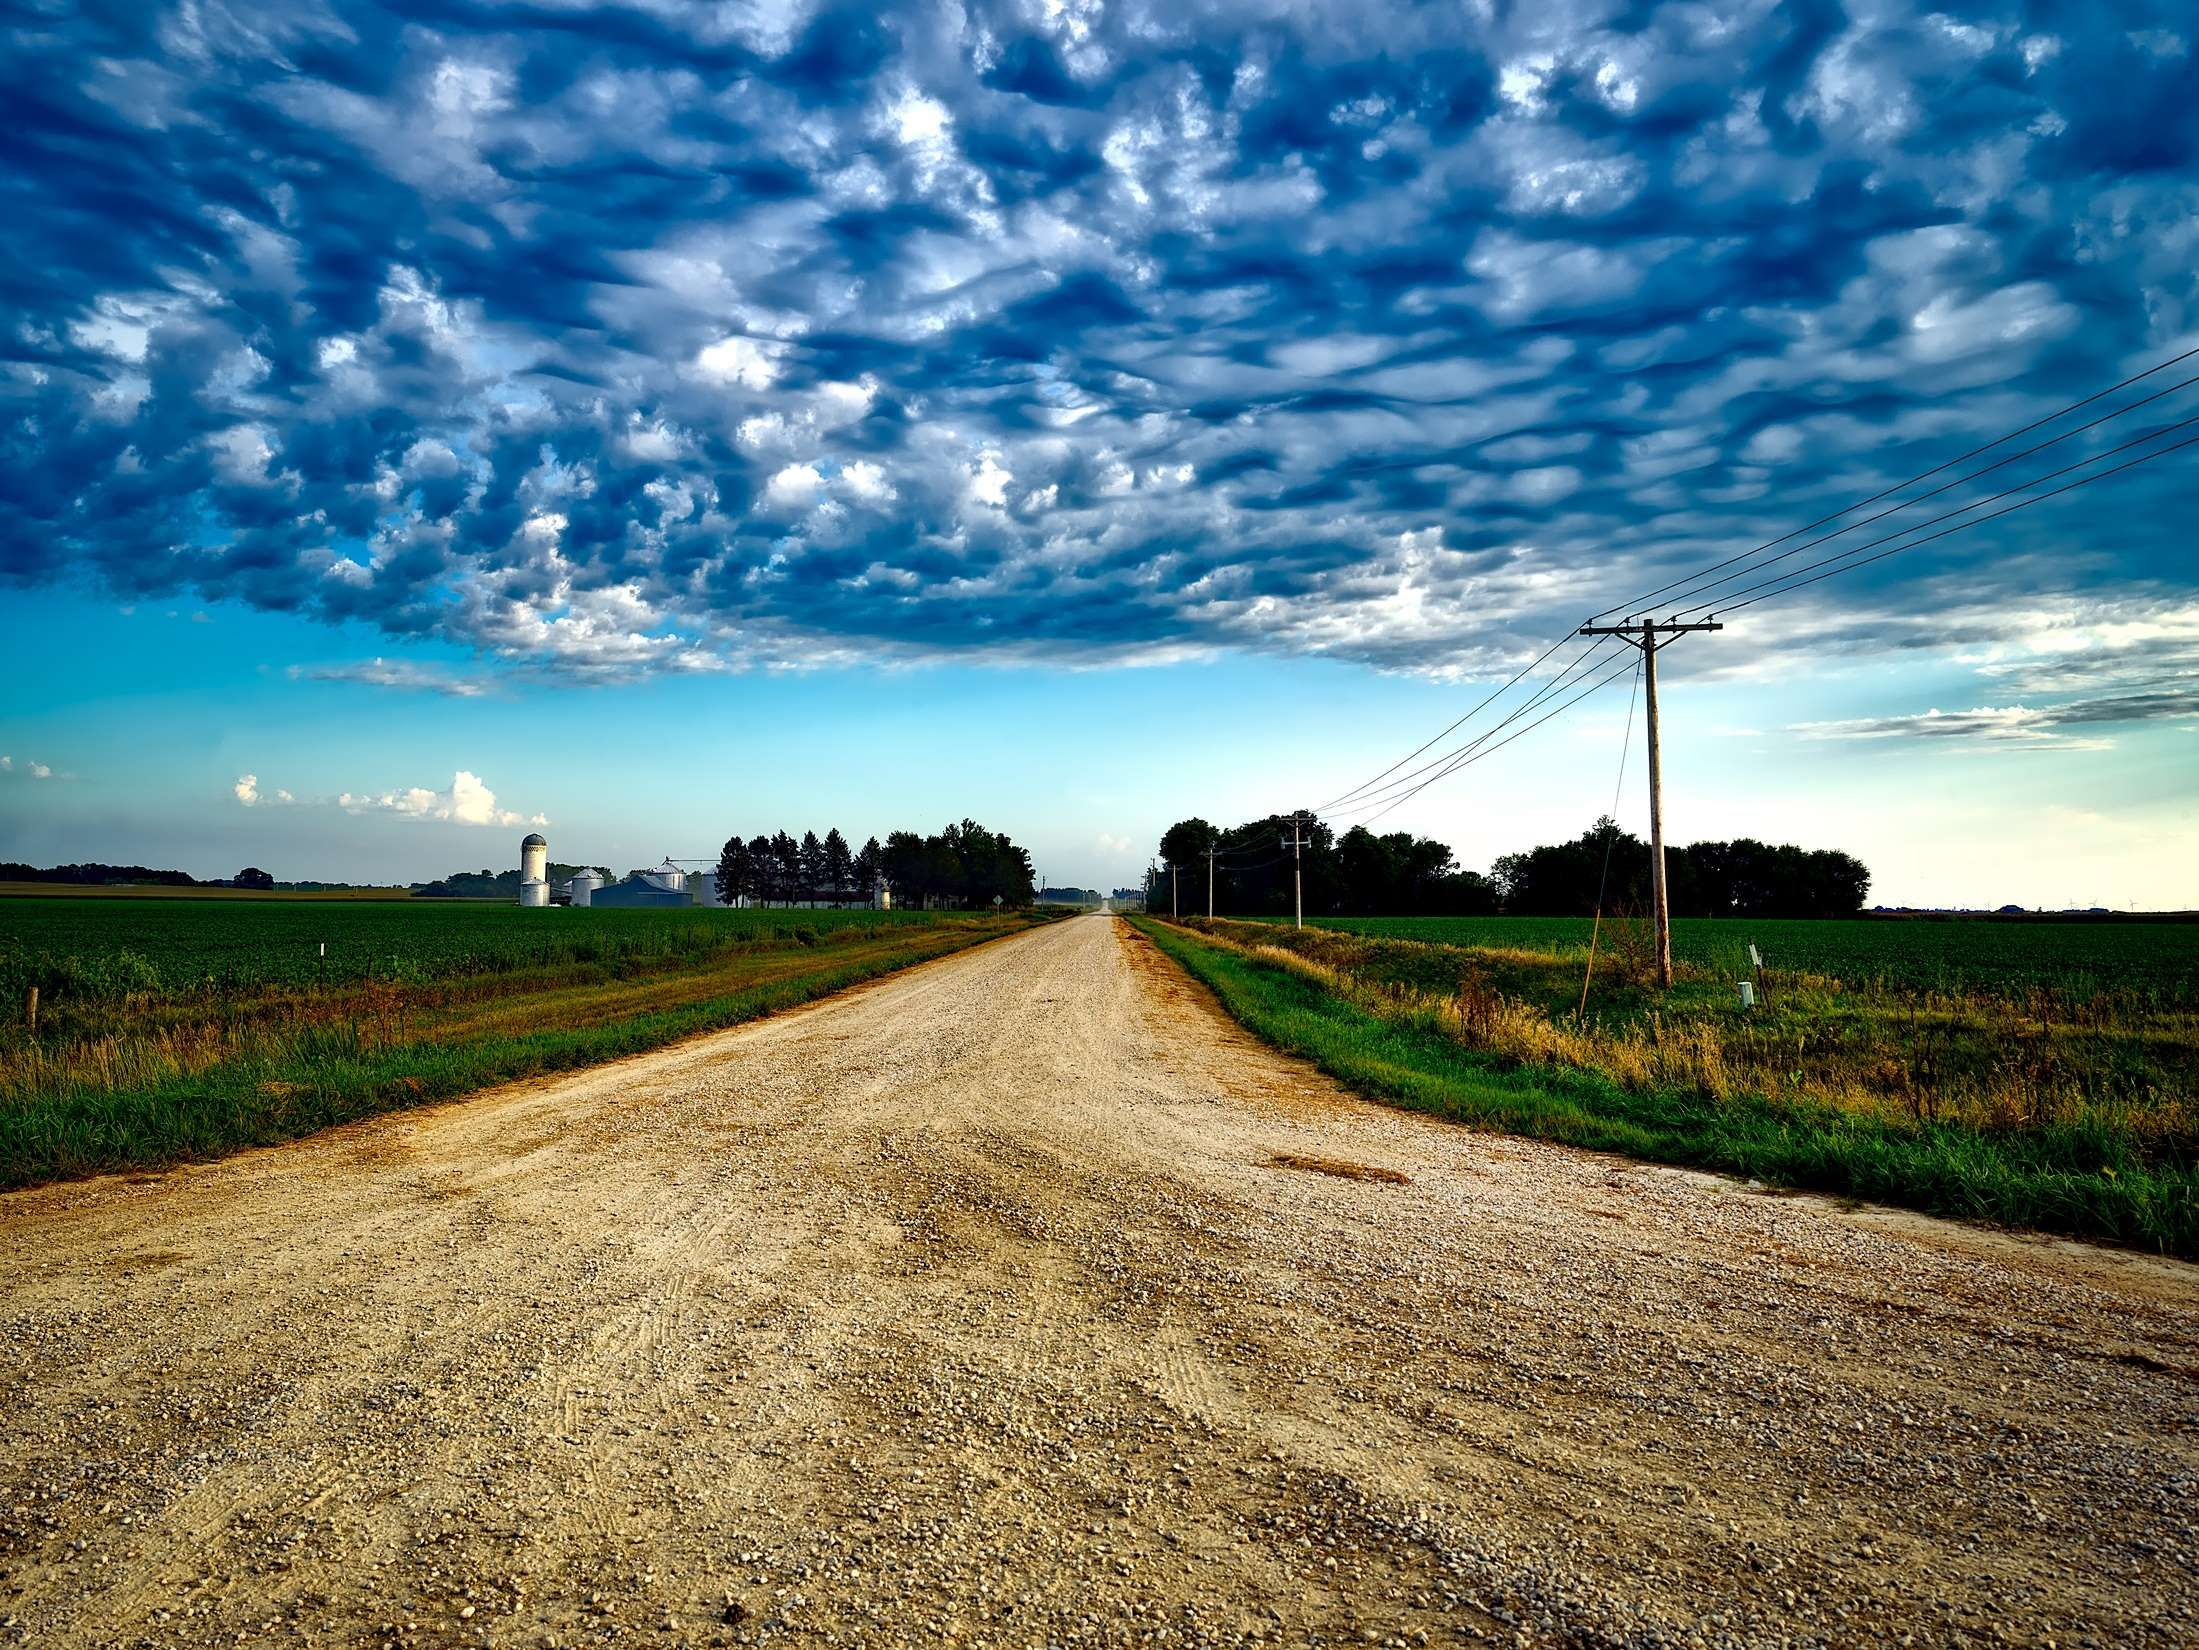 Agriculture Clouds Corn Country Dirt Road Farm Fields